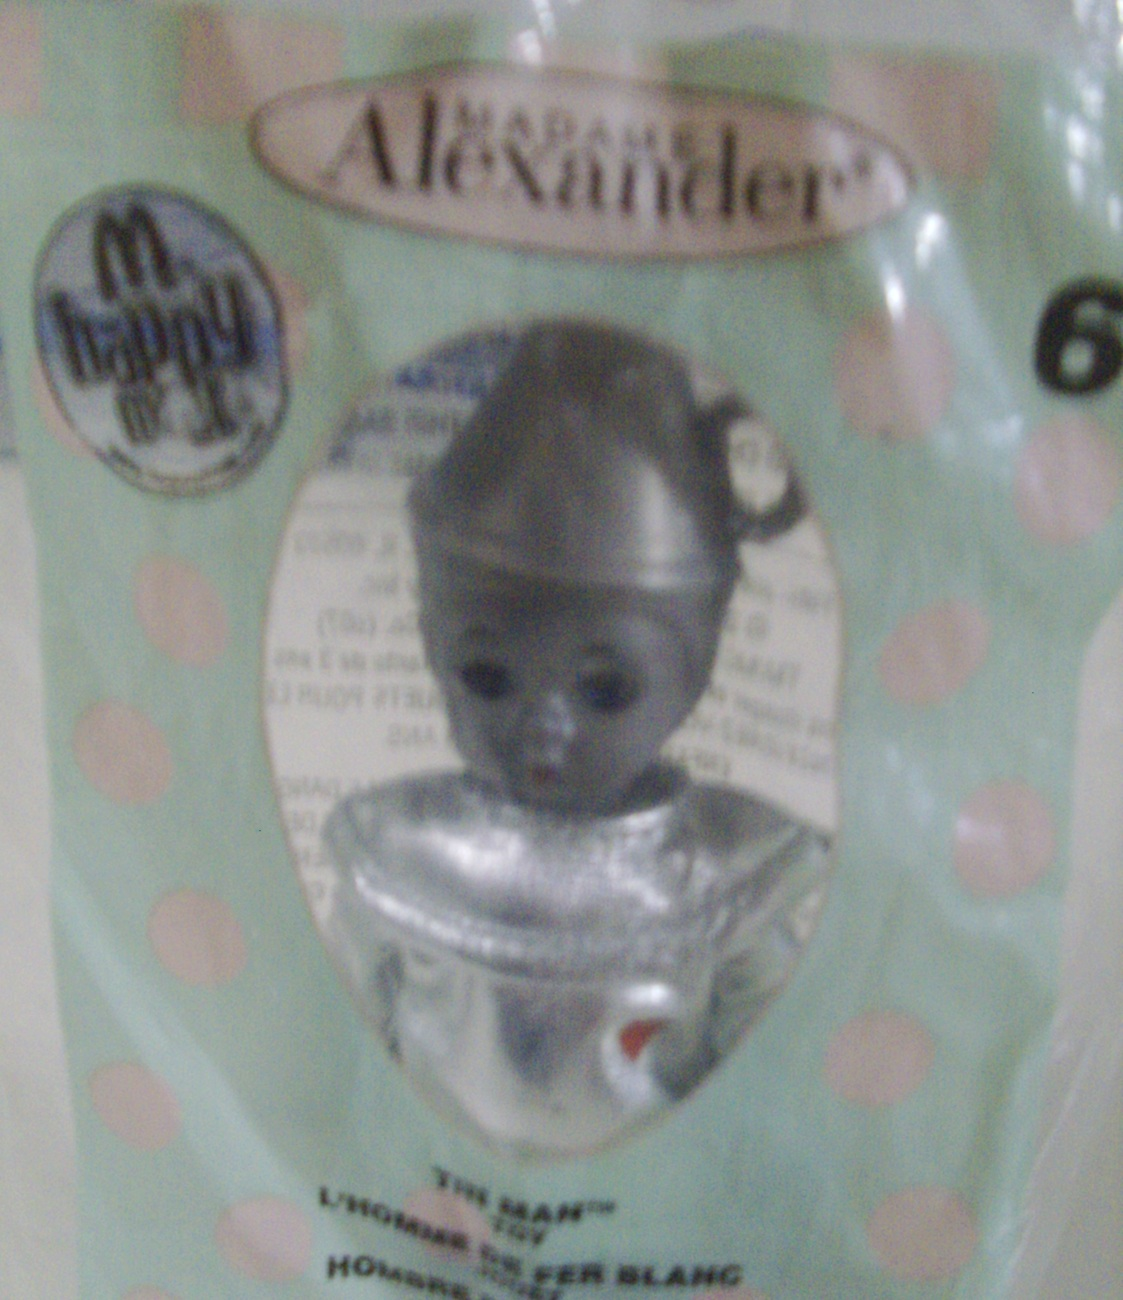 Madame Alexander Tin Man doll 2007 McDonald's Happy Meal toy Wizard of Oz - New